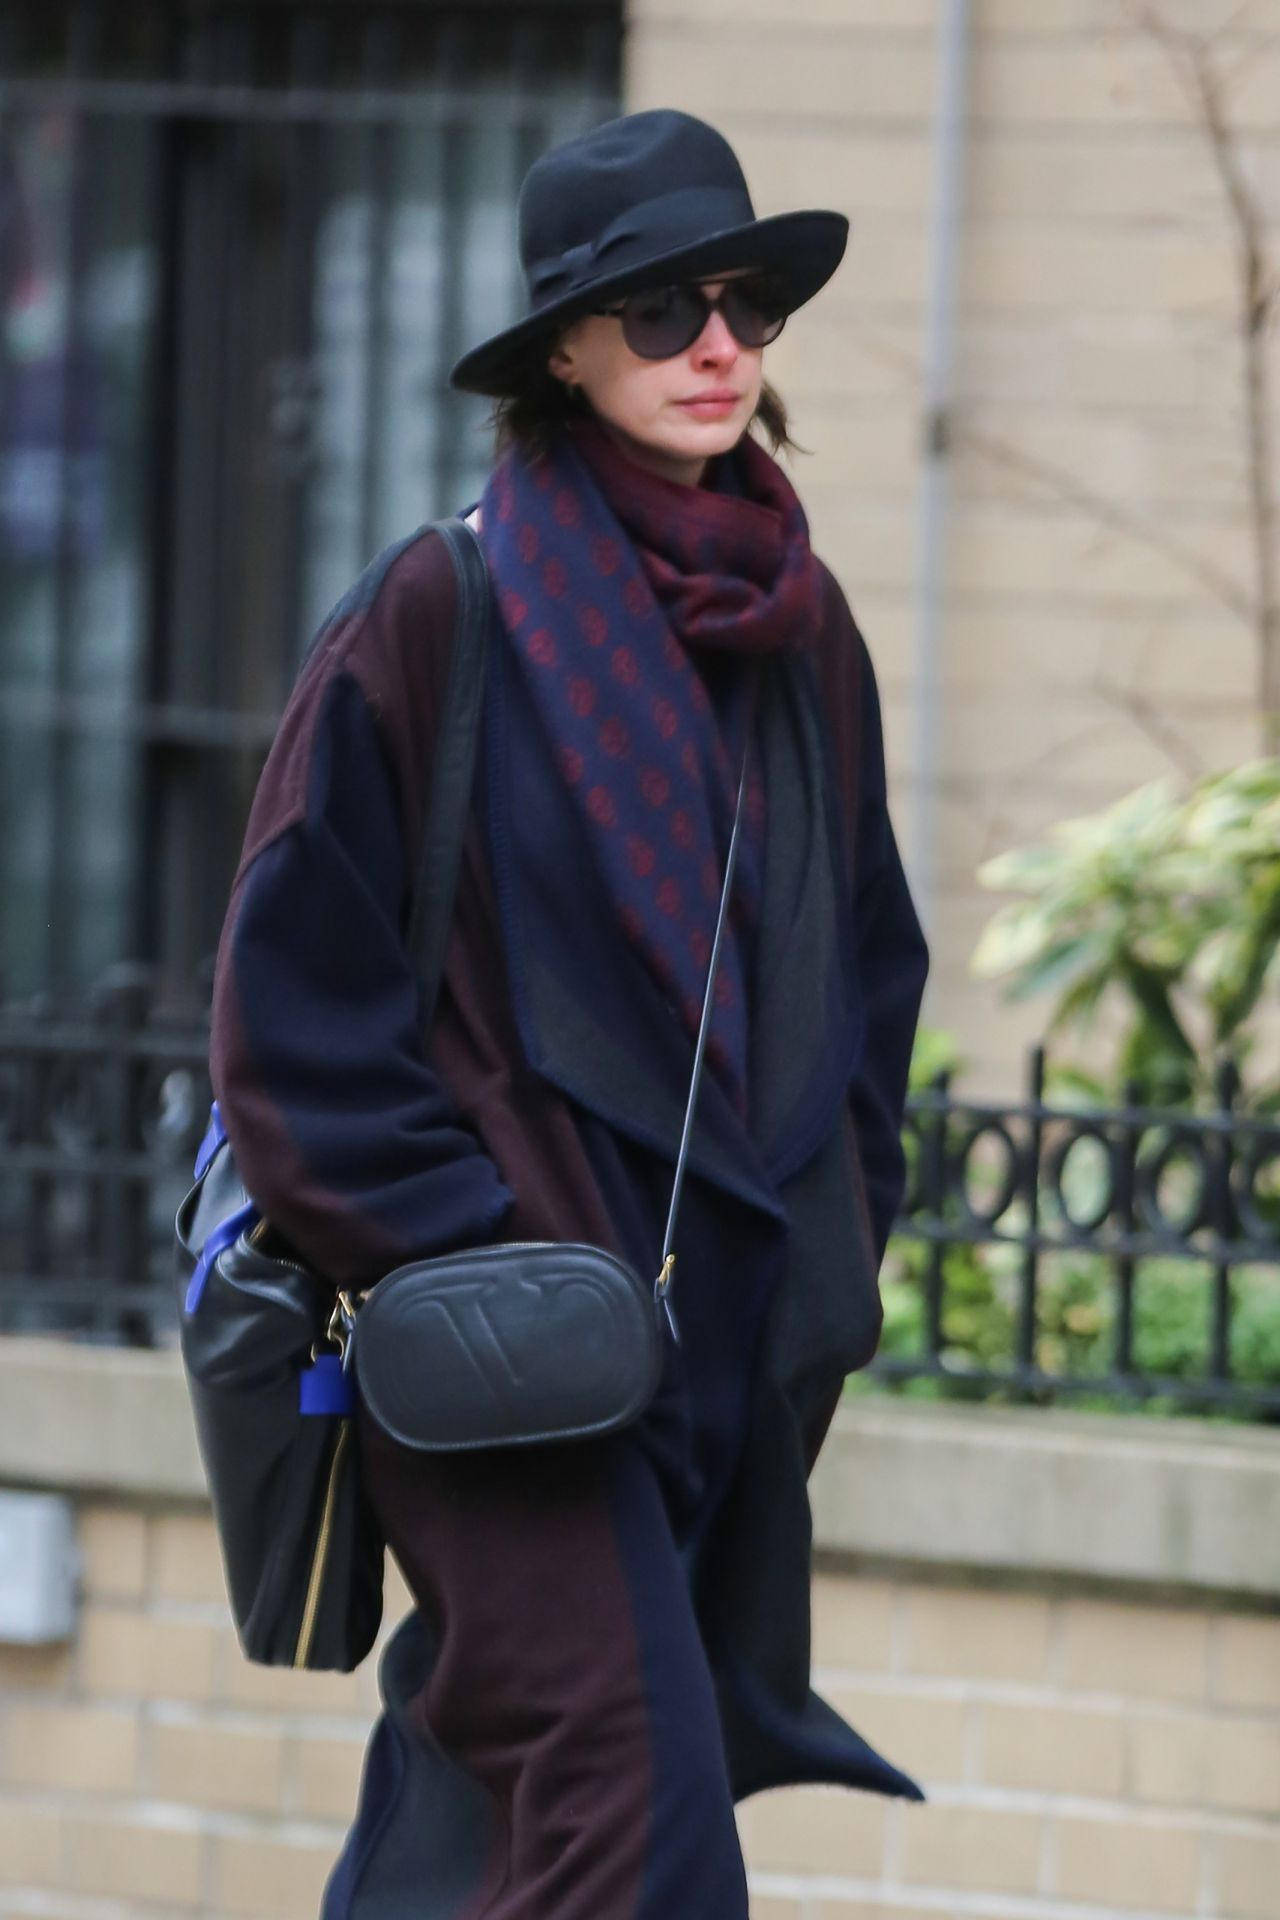 anne hathaway casual style - photo #16